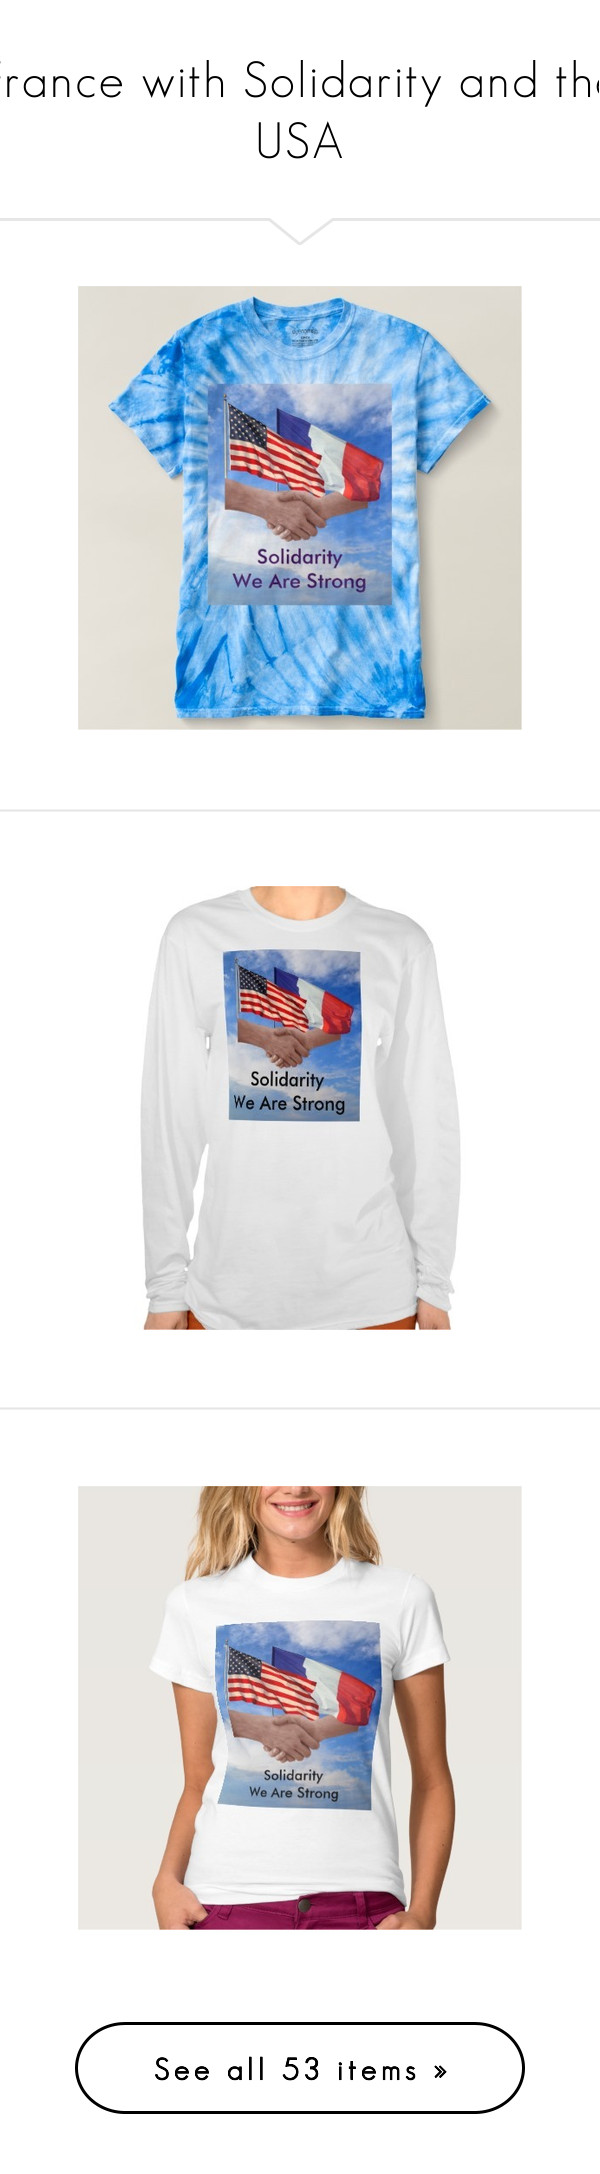 """""""France with Solidarity and the USA"""" by sandyspider ❤ liked on Polyvore featuring tops, t-shirts, blue top, blue tie dye t shirt, blue tee, tie dye t shirts, tie dye tee, hanes, white top and jersey t shirts"""